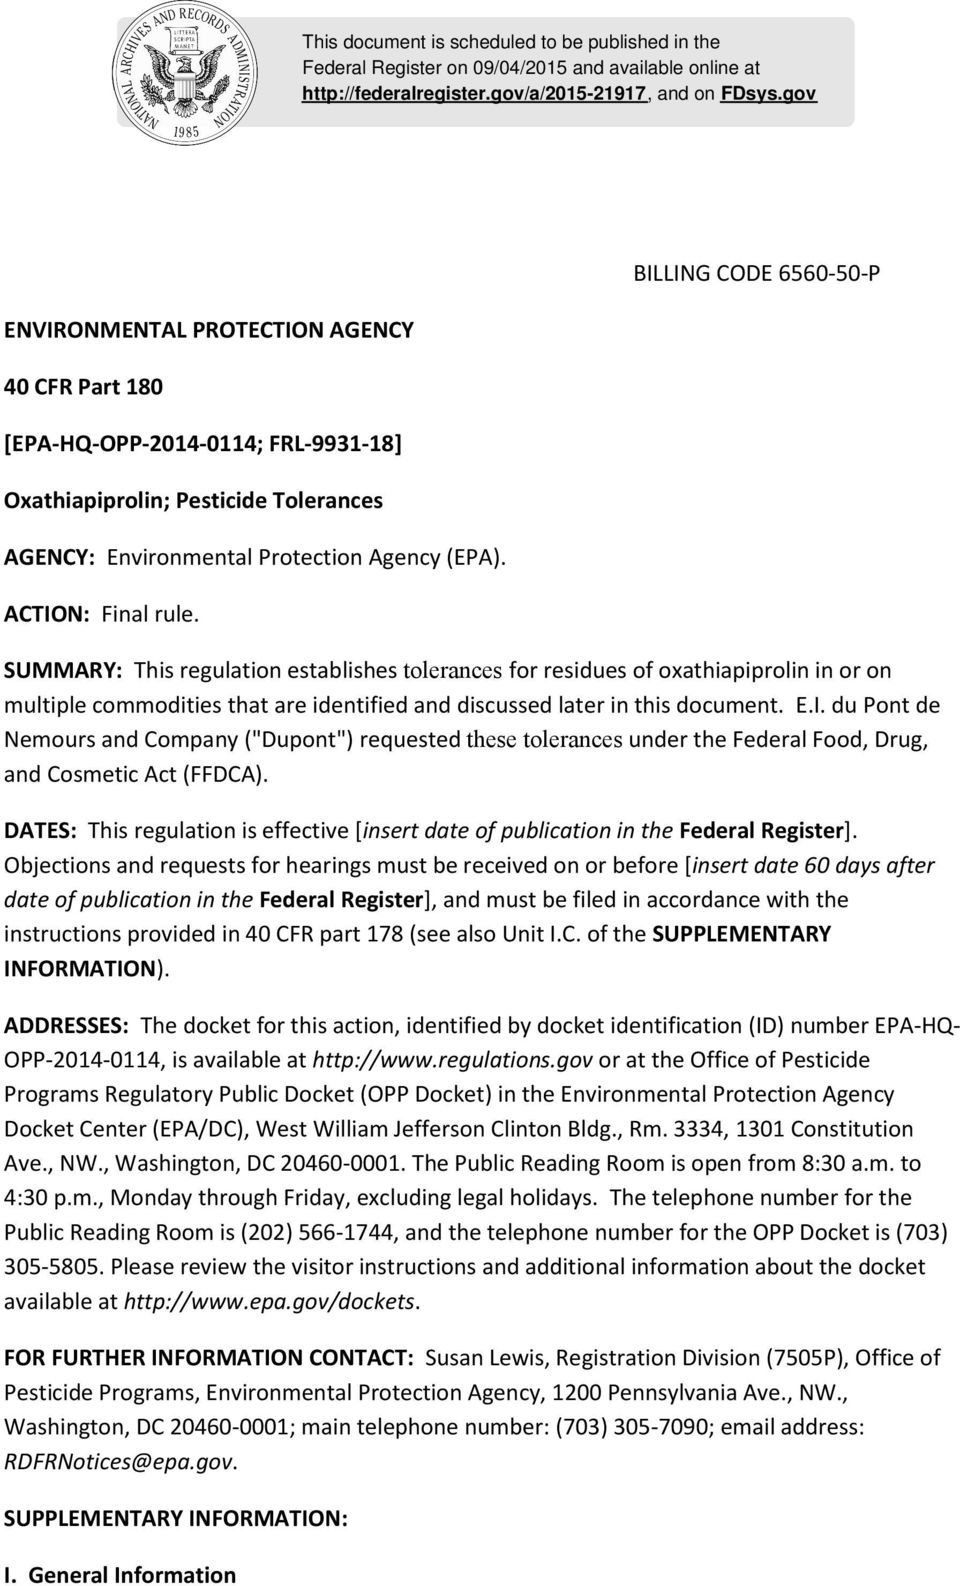 "BILLING CODE 6560-50-P SUMMARY: This regulation establishes tolerances for residues of oxathiapiprolin in or on multiple commodities that are identified and discussed later in this document. E.I. du Pont de Nemours and Company (""Dupont"") requested these tolerances under the Federal Food, Drug, and Cosmetic Act (FFDCA)."